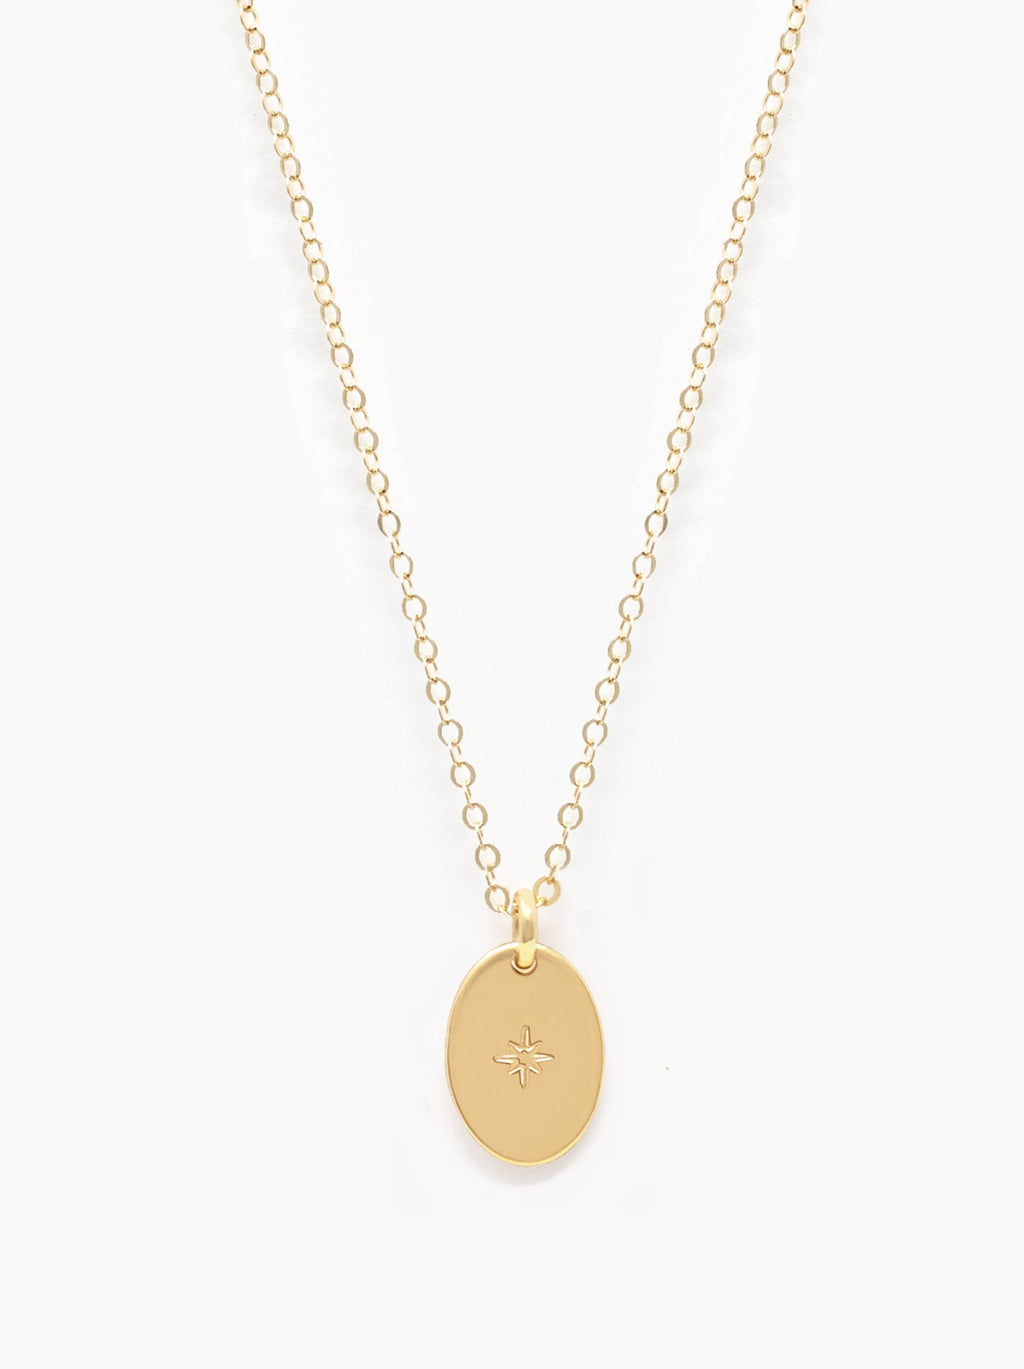 Able Dainty Oval Necklace